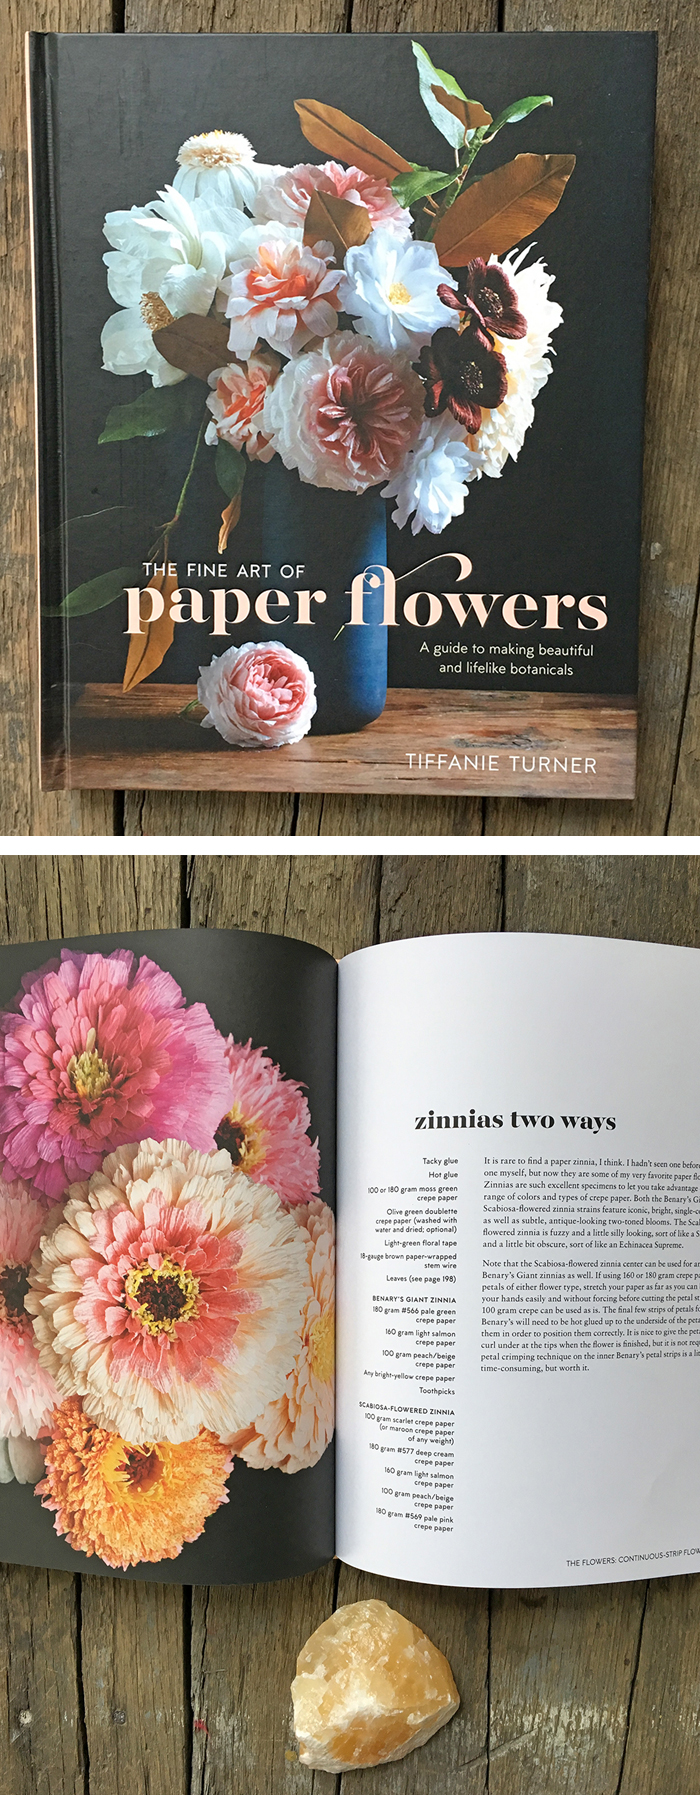 Learn how to make faux blooms with paper flowers diy the fine art of paper flowers by tiffanie turner mightylinksfo